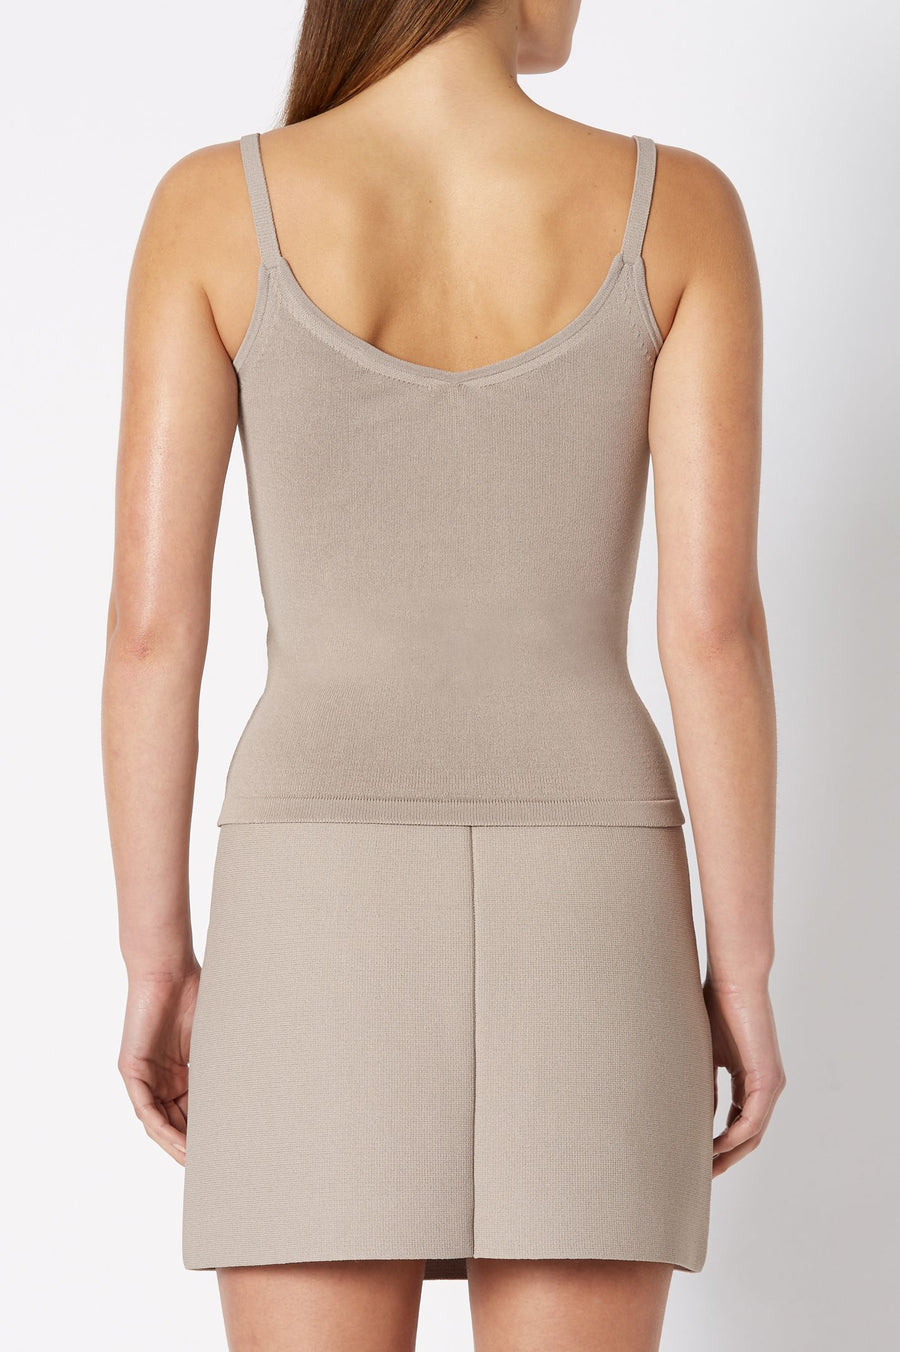 CREPE KNIT CROPPED CAMISOLE, shoestring straps, color CLAY